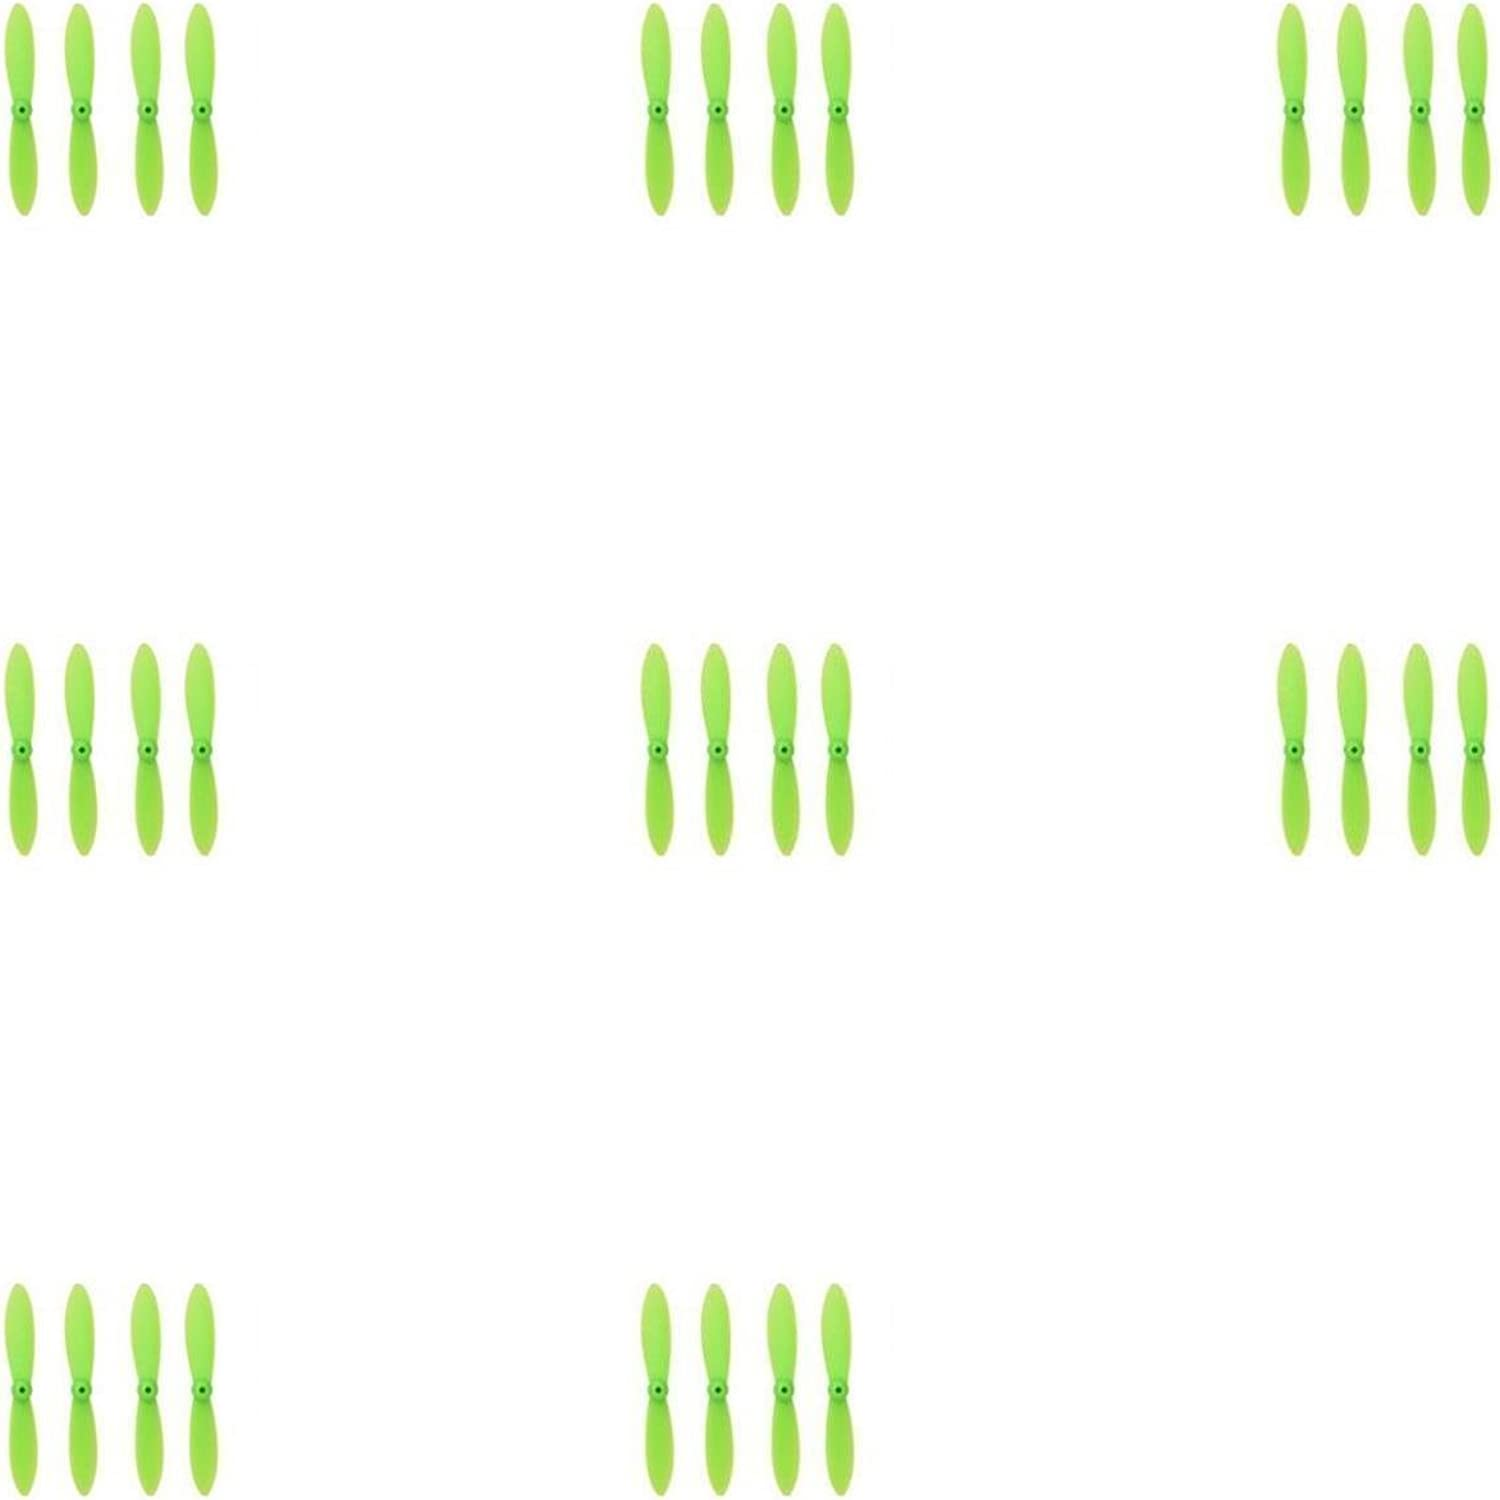 8 x Quantity of WLtoys V282 All Green Nano Quadcopter Propeller blade Set 32mm Propellers Blades Props Quad Drone parts  FAST FREE SHIPPING FROM Orlando, Florida USA